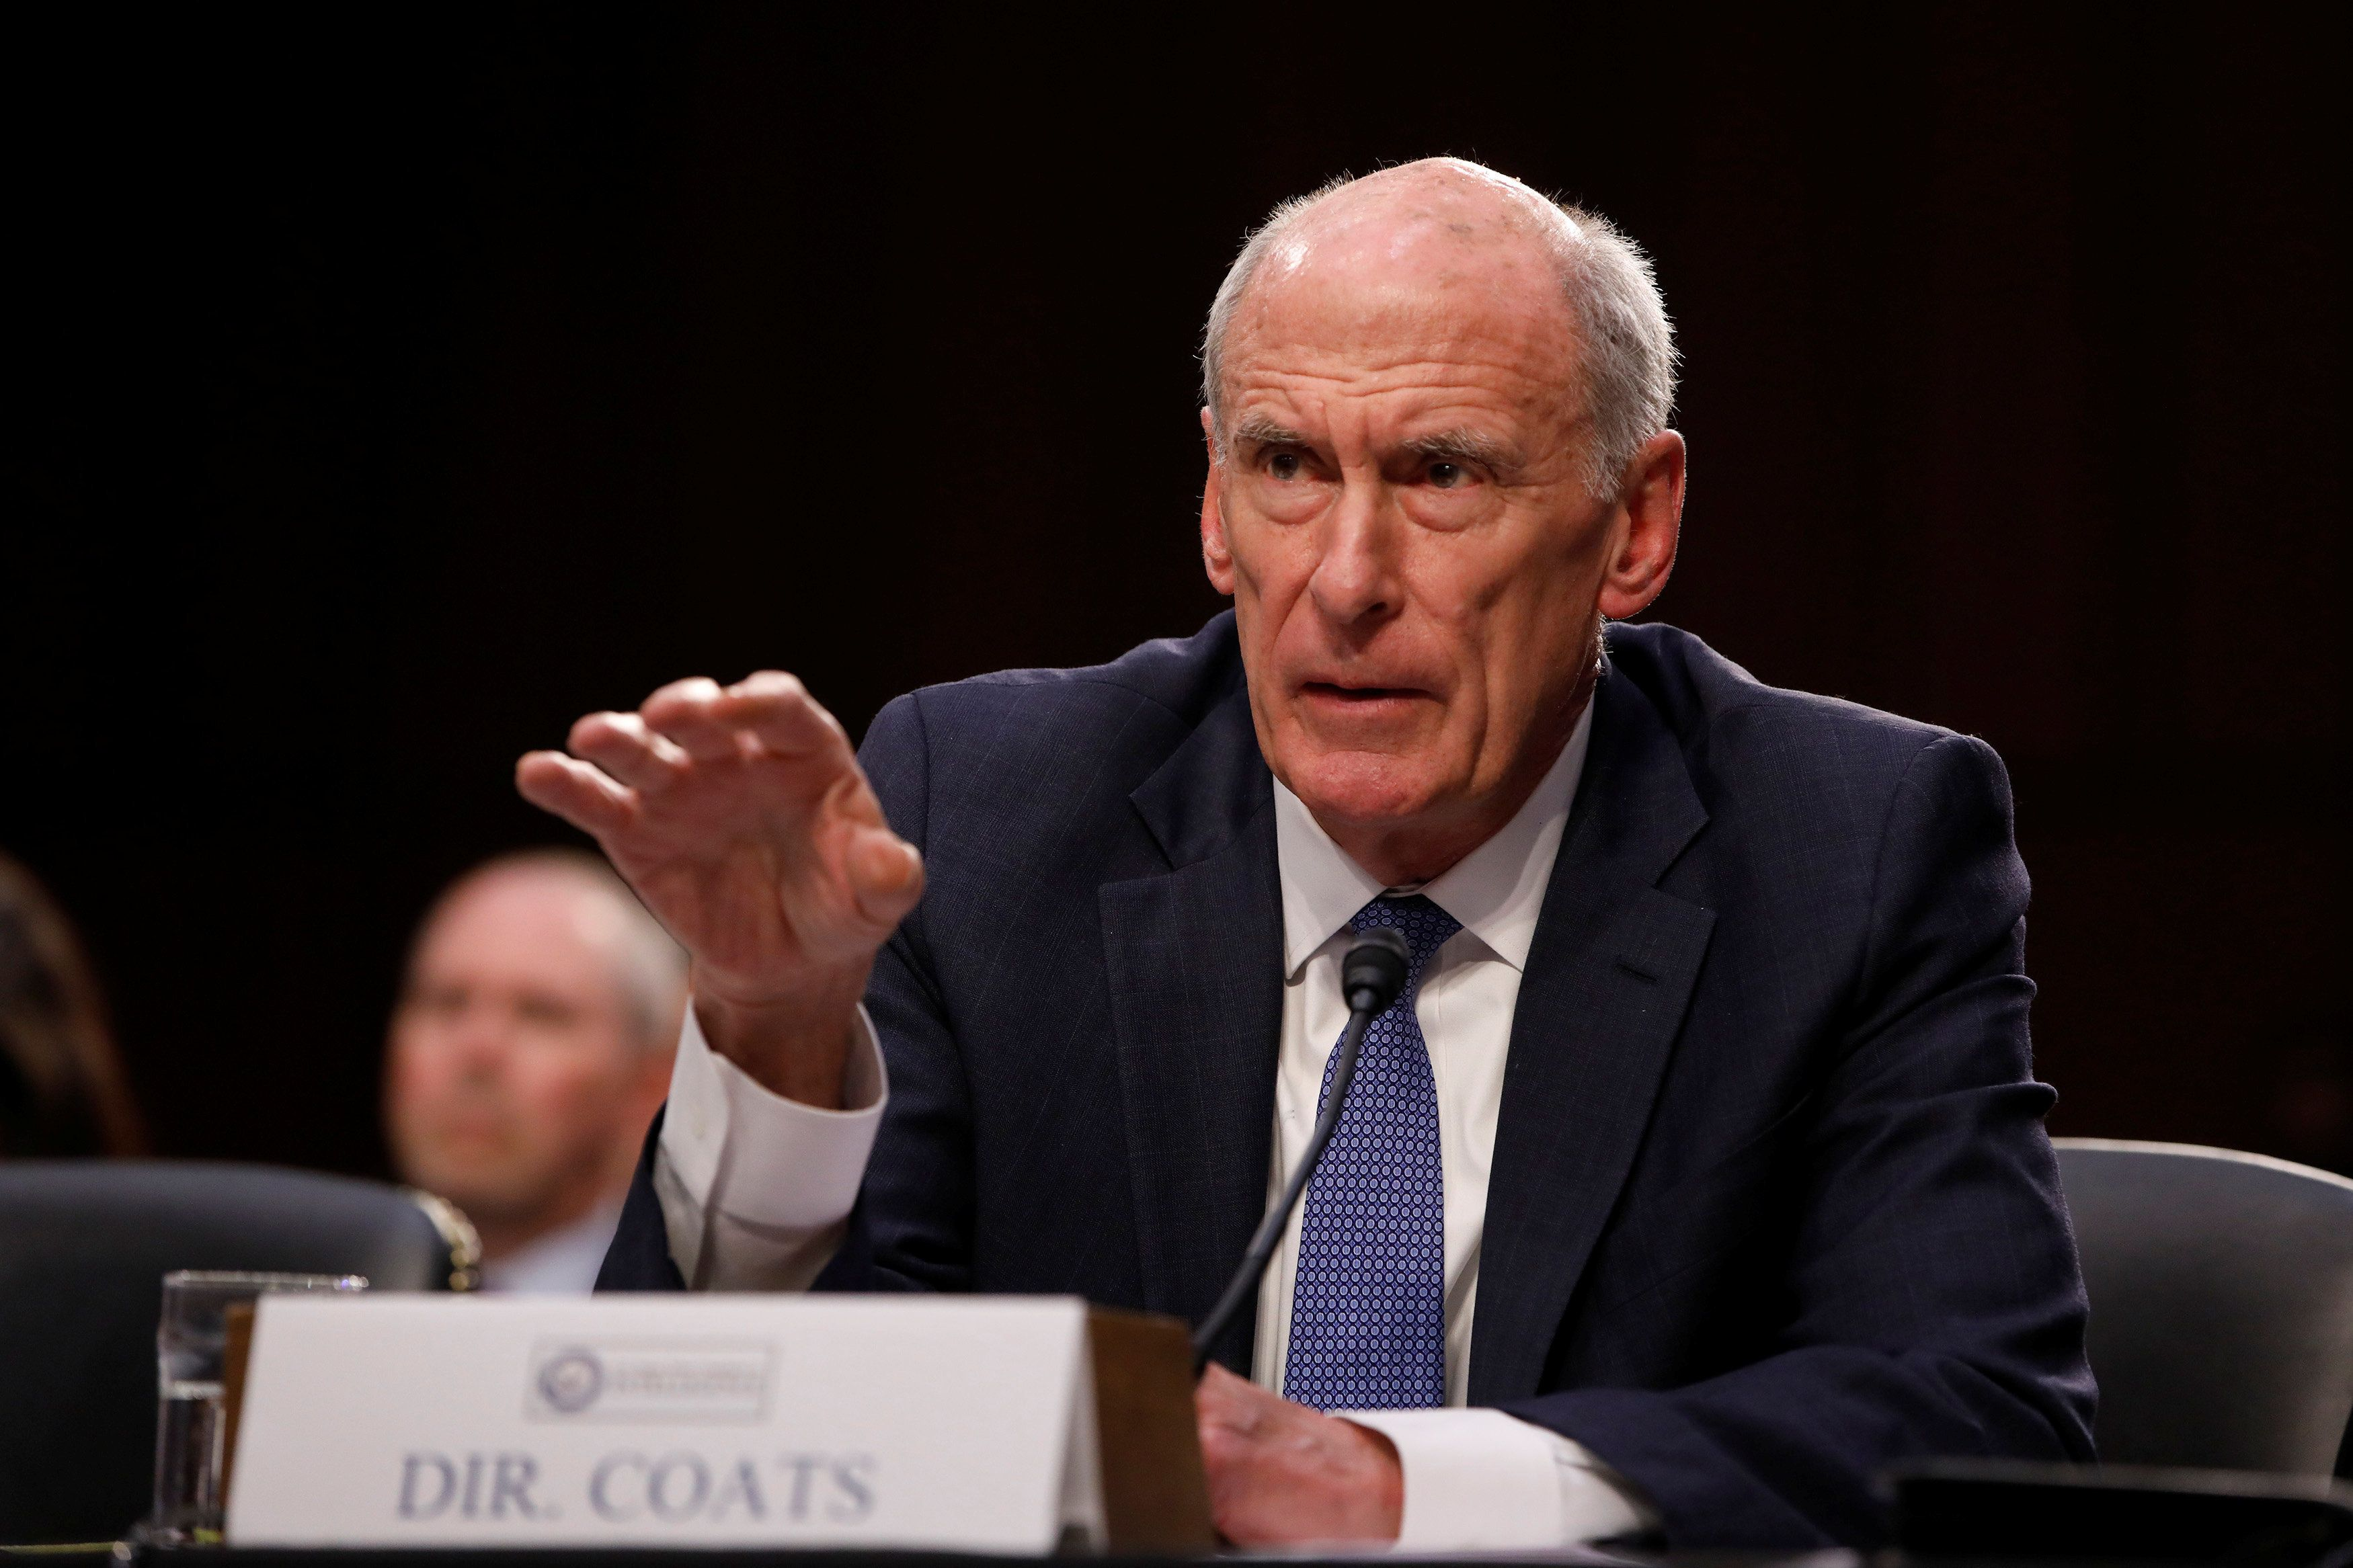 Director of National Intelligence Daniel Coats testifies before a Senate Intelligence Committee hearing on Capitol Hill in Washington, D.C., U.S., June 7, 2017.  REUTERS/Aaron P. Bernstein